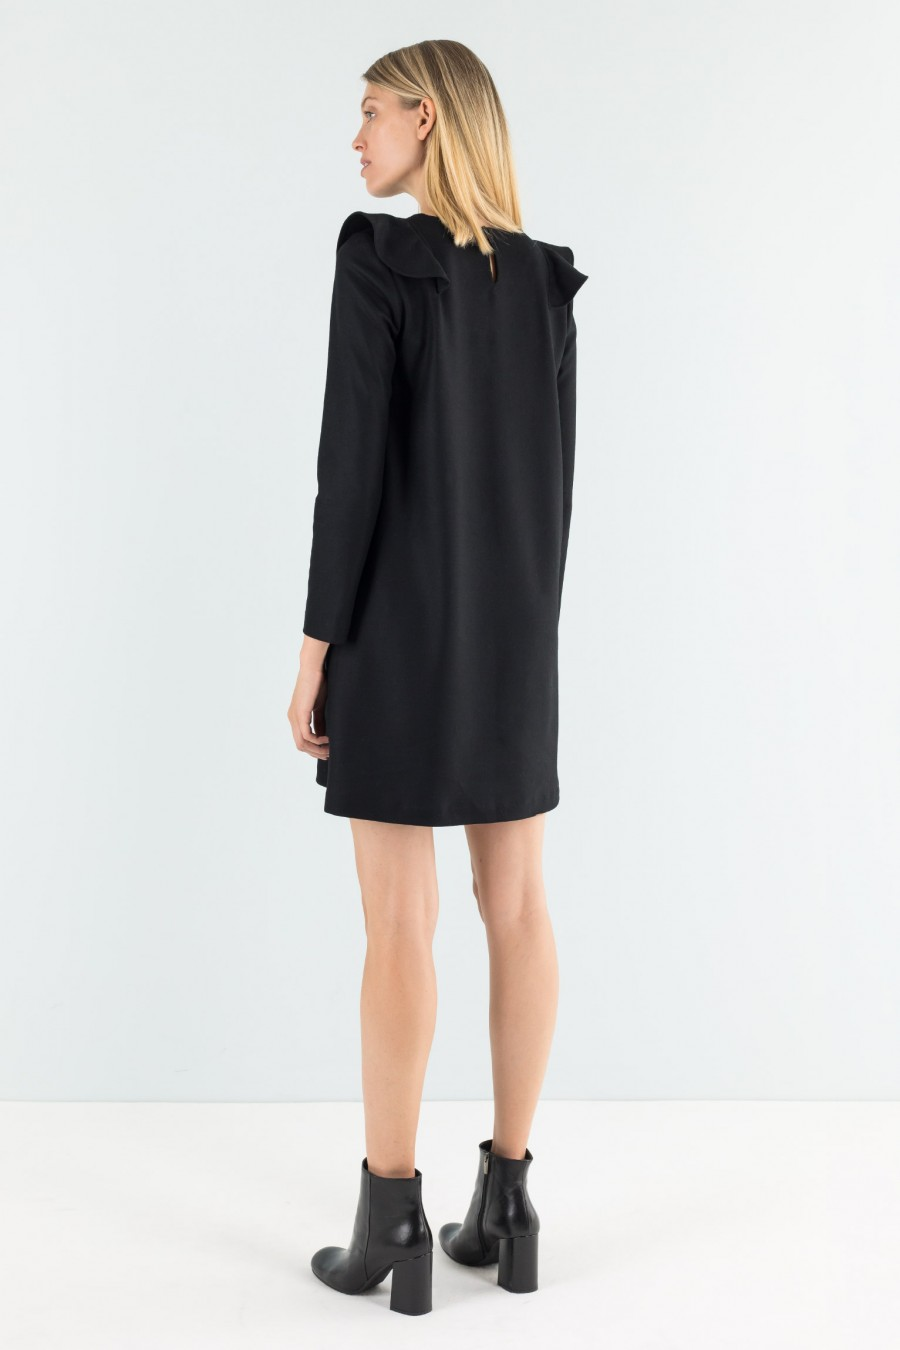 Black wool dress with ruches